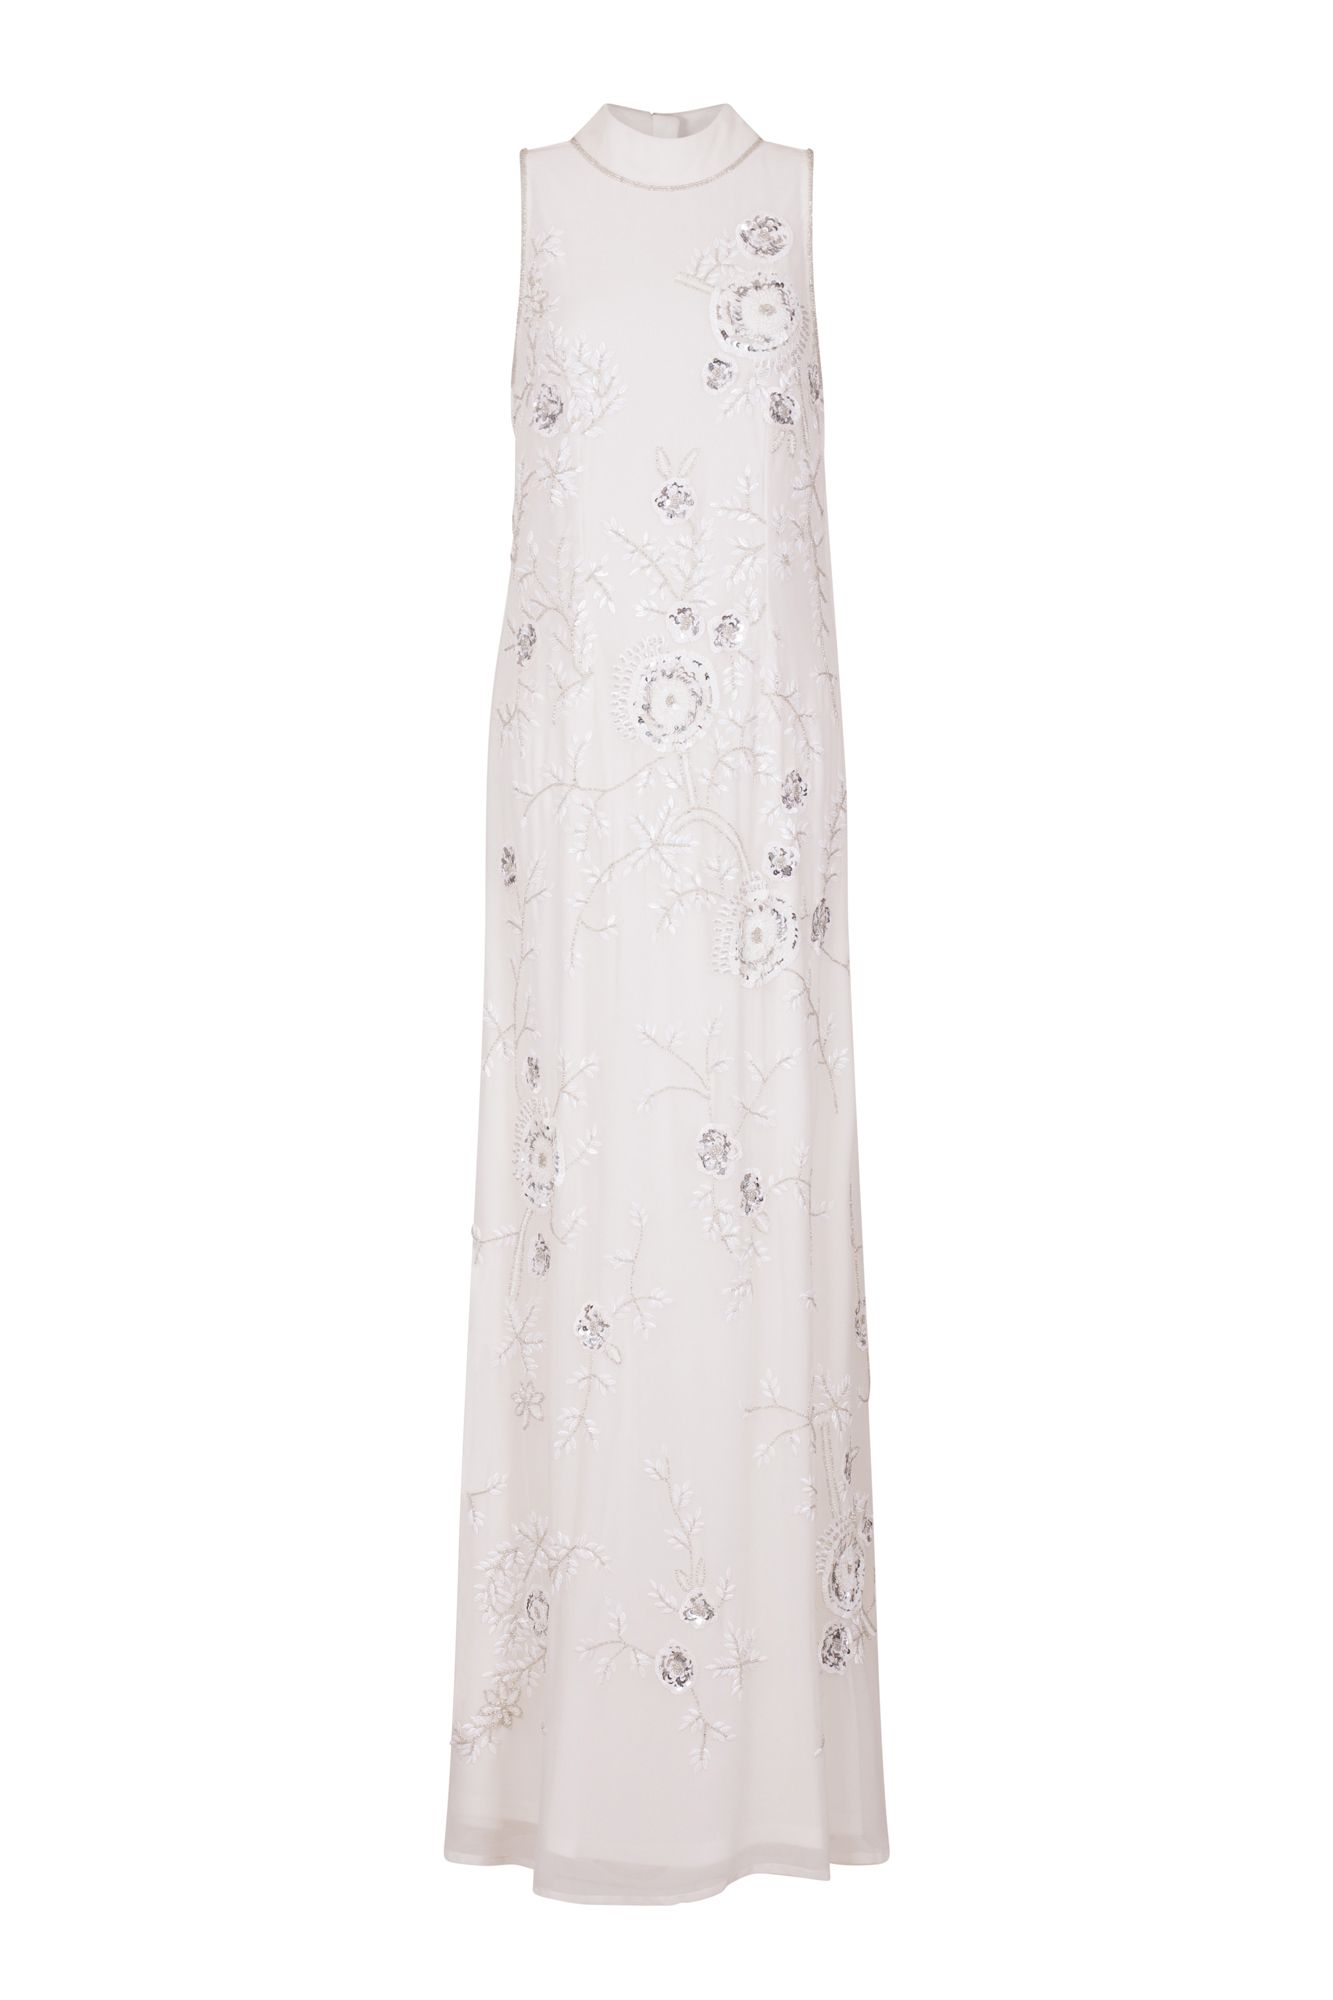 1838498c6f4 Frock and Frill Blossom All Over Embellished High Neck Trophy Maxi Dress